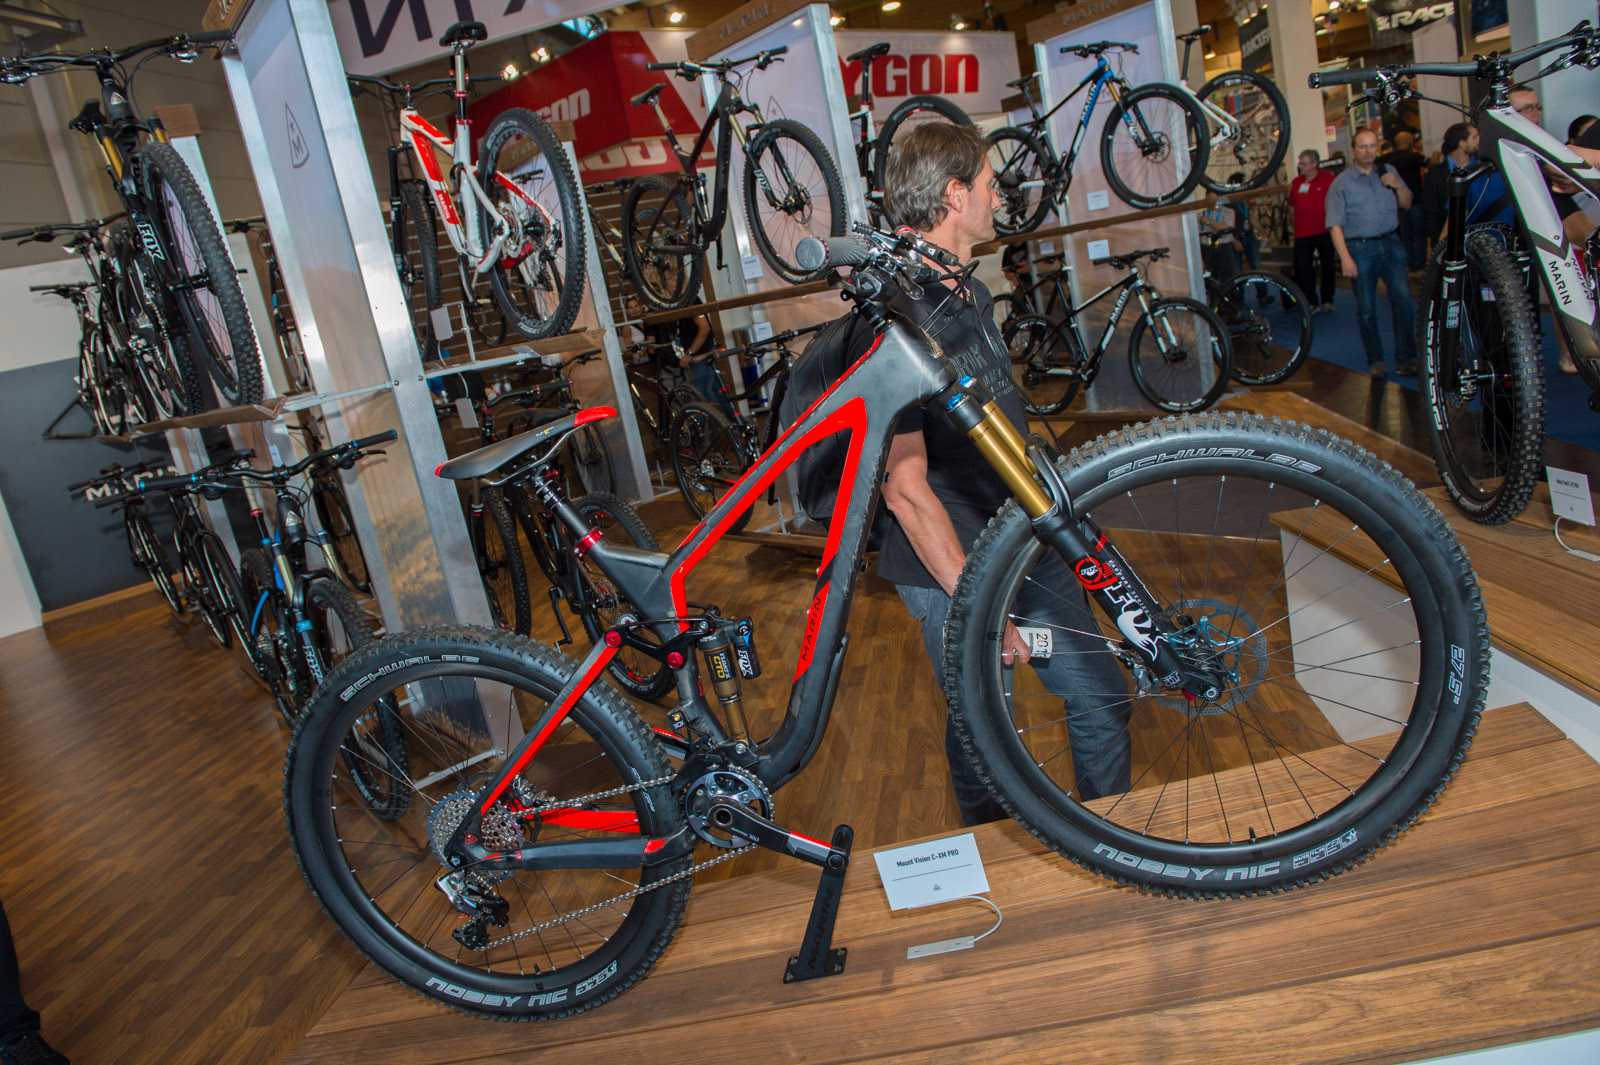 2014 Marin Mount Vision Pro - 2014 Trail, All-Mountain & Enduro Bikes at Eurobike 2013 - Mountain Biking Pictures - Vital MTB